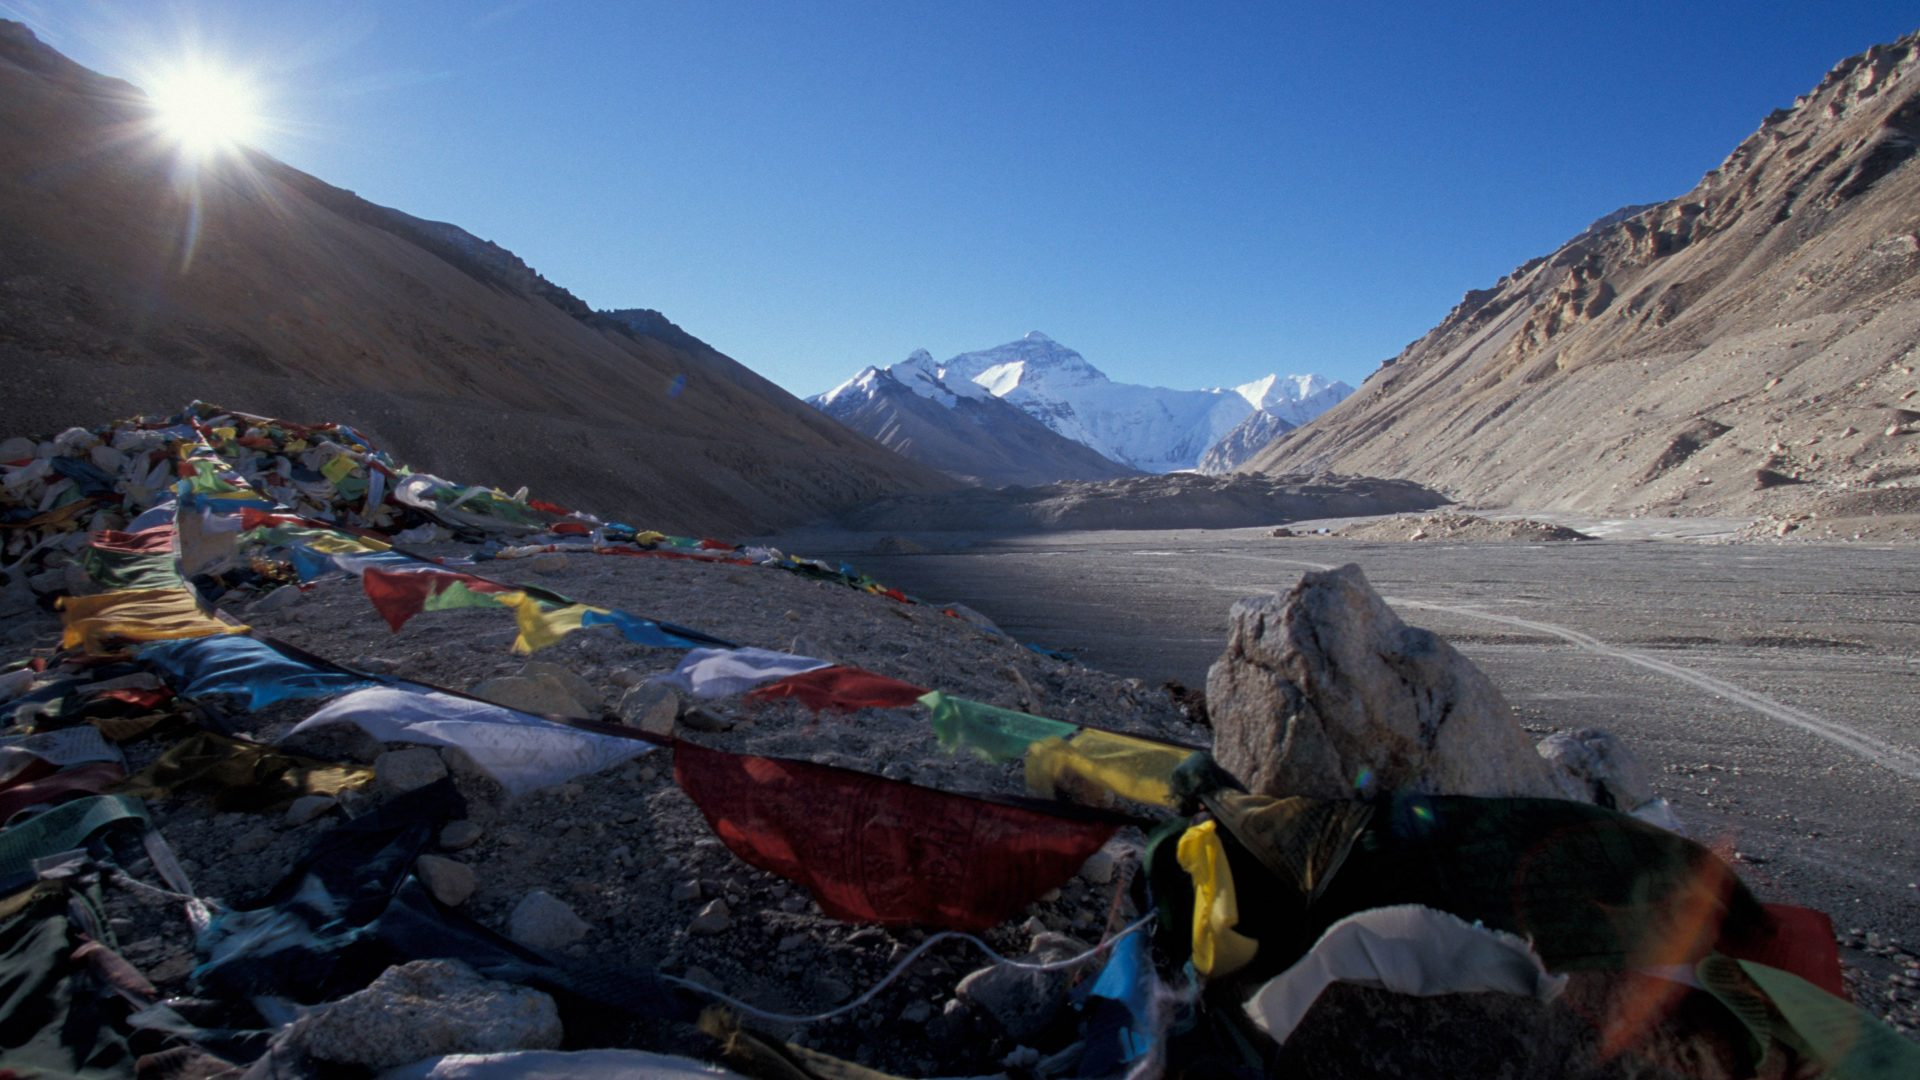 Mt. Everest from the Tibet's Rongbuk base camp, Himalaya